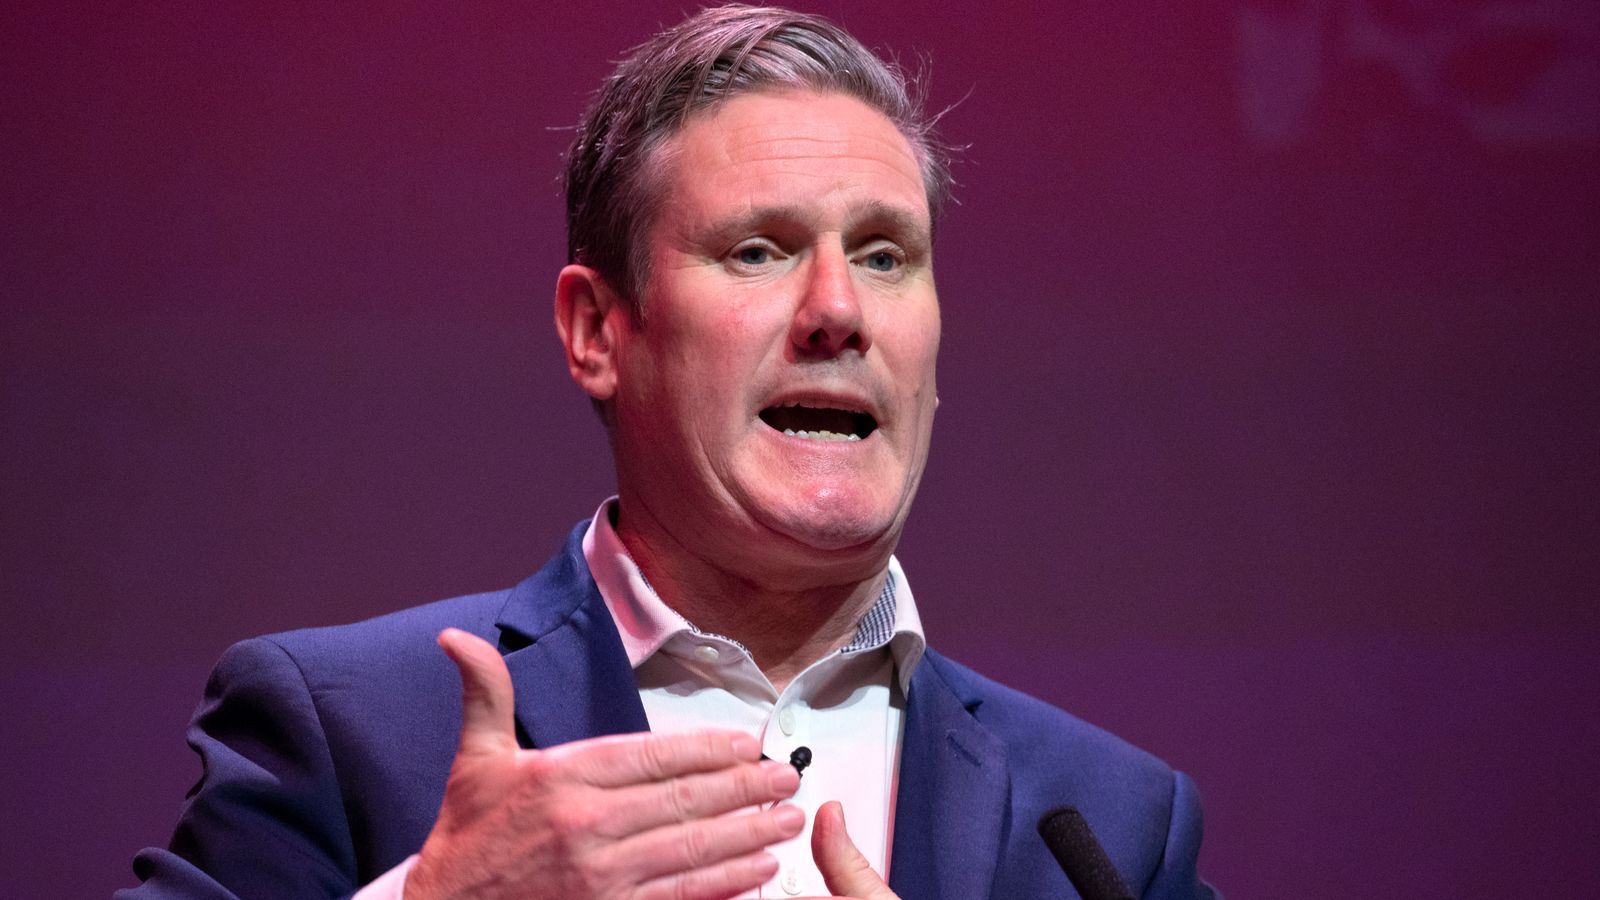 Sir Keir Starmer: Labour's Brexit stance in the general election was the 'right policy'